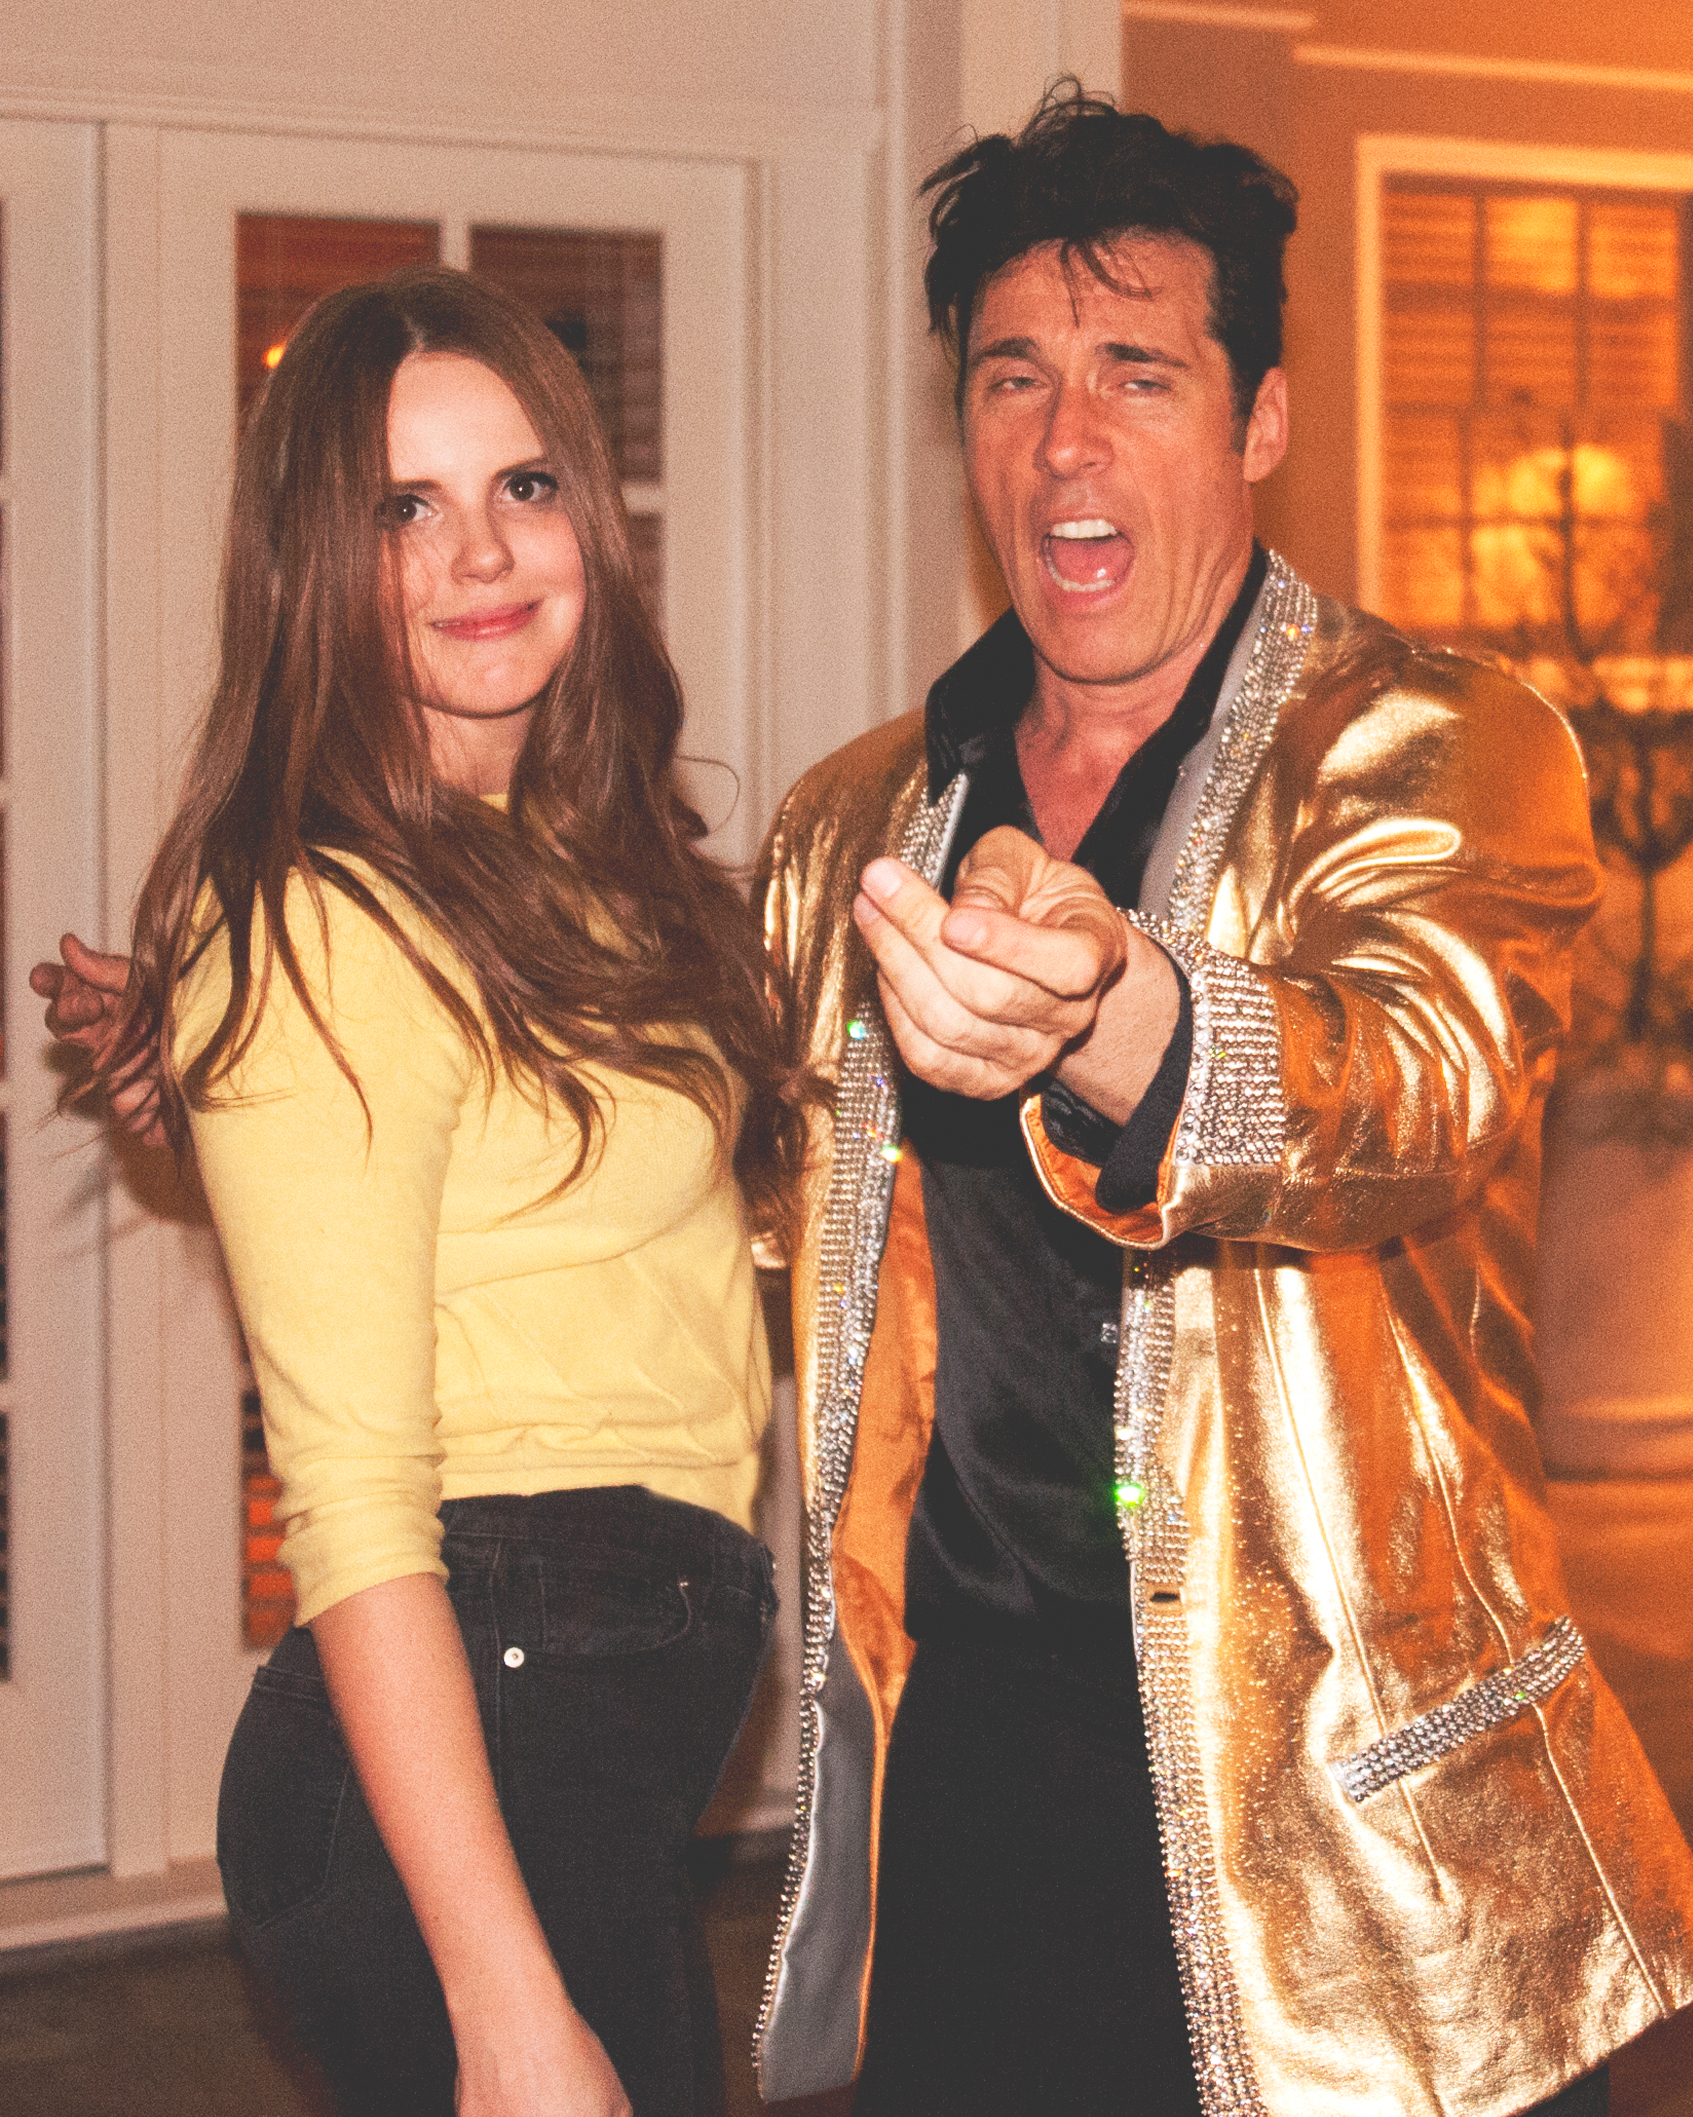 claire-thomas-bachelorette-party-outdoor-movie-night-elvis-impersonator-0415.jpg